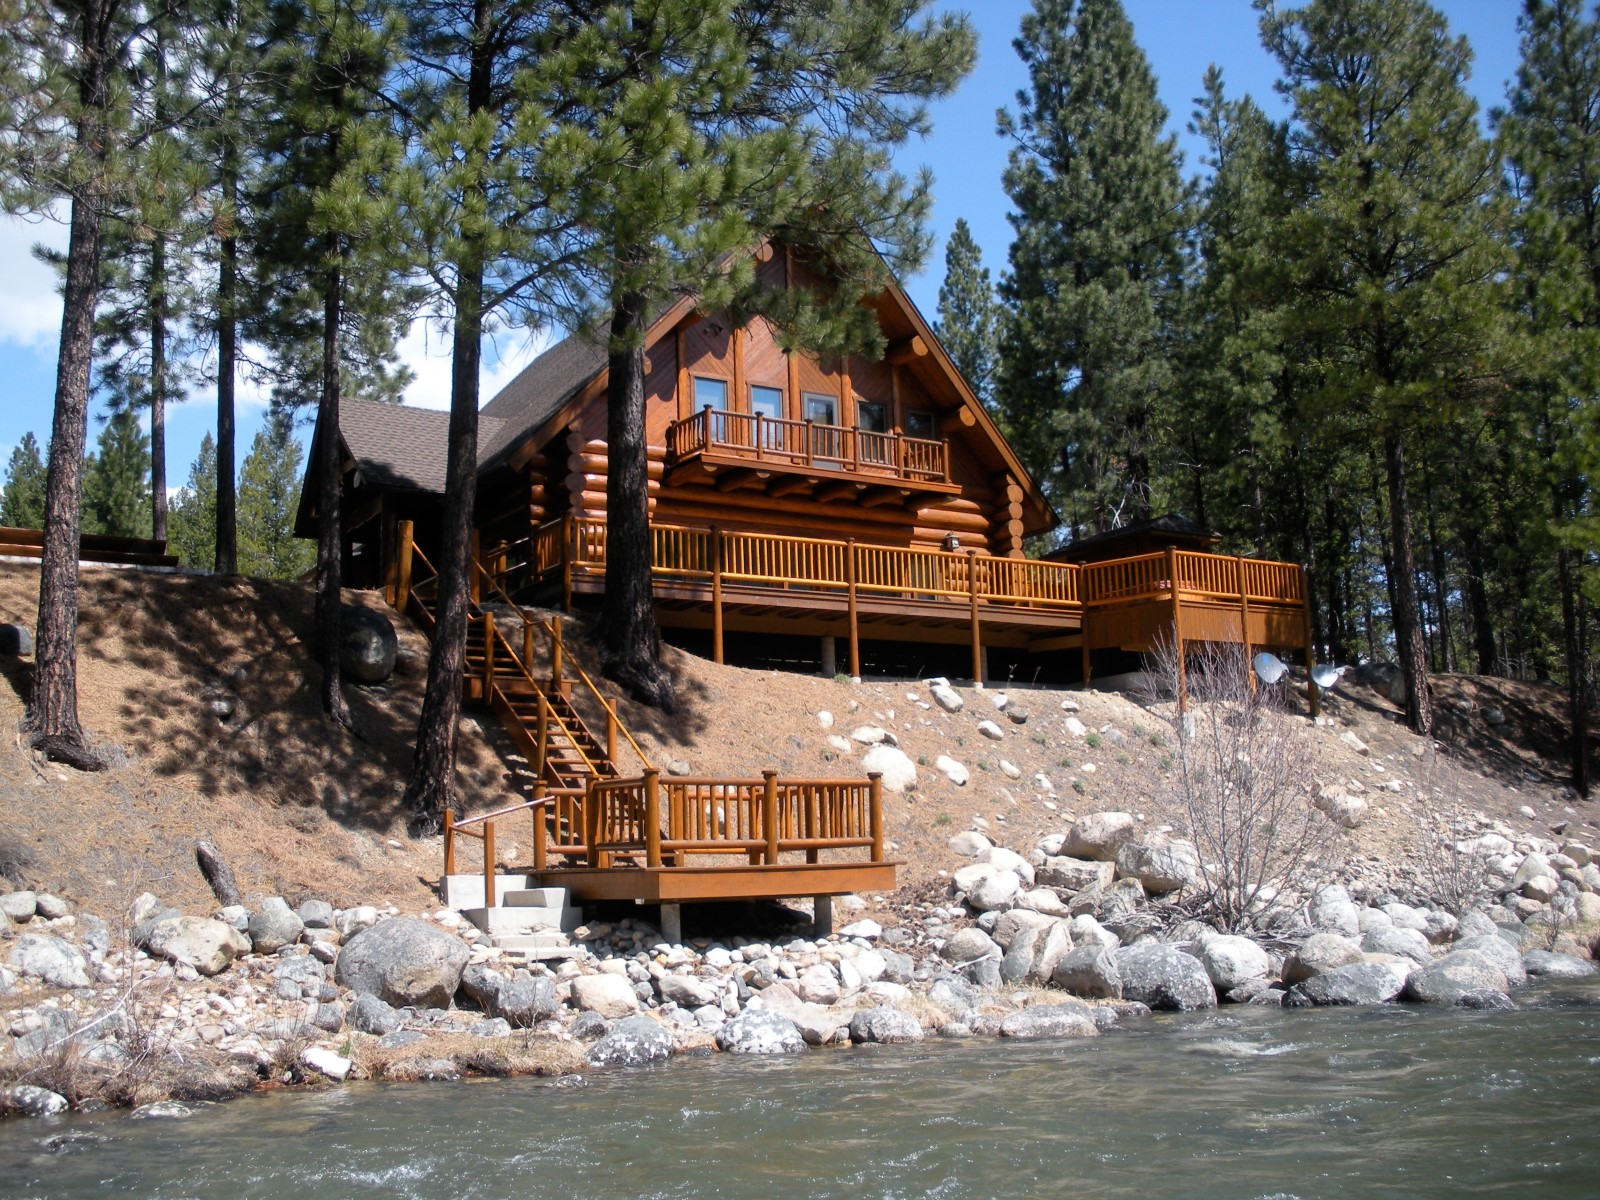 Single Family Home for Sale at 6300 West Fork Road 6300 West Fork Rd Darby, Montana, 59829 United States